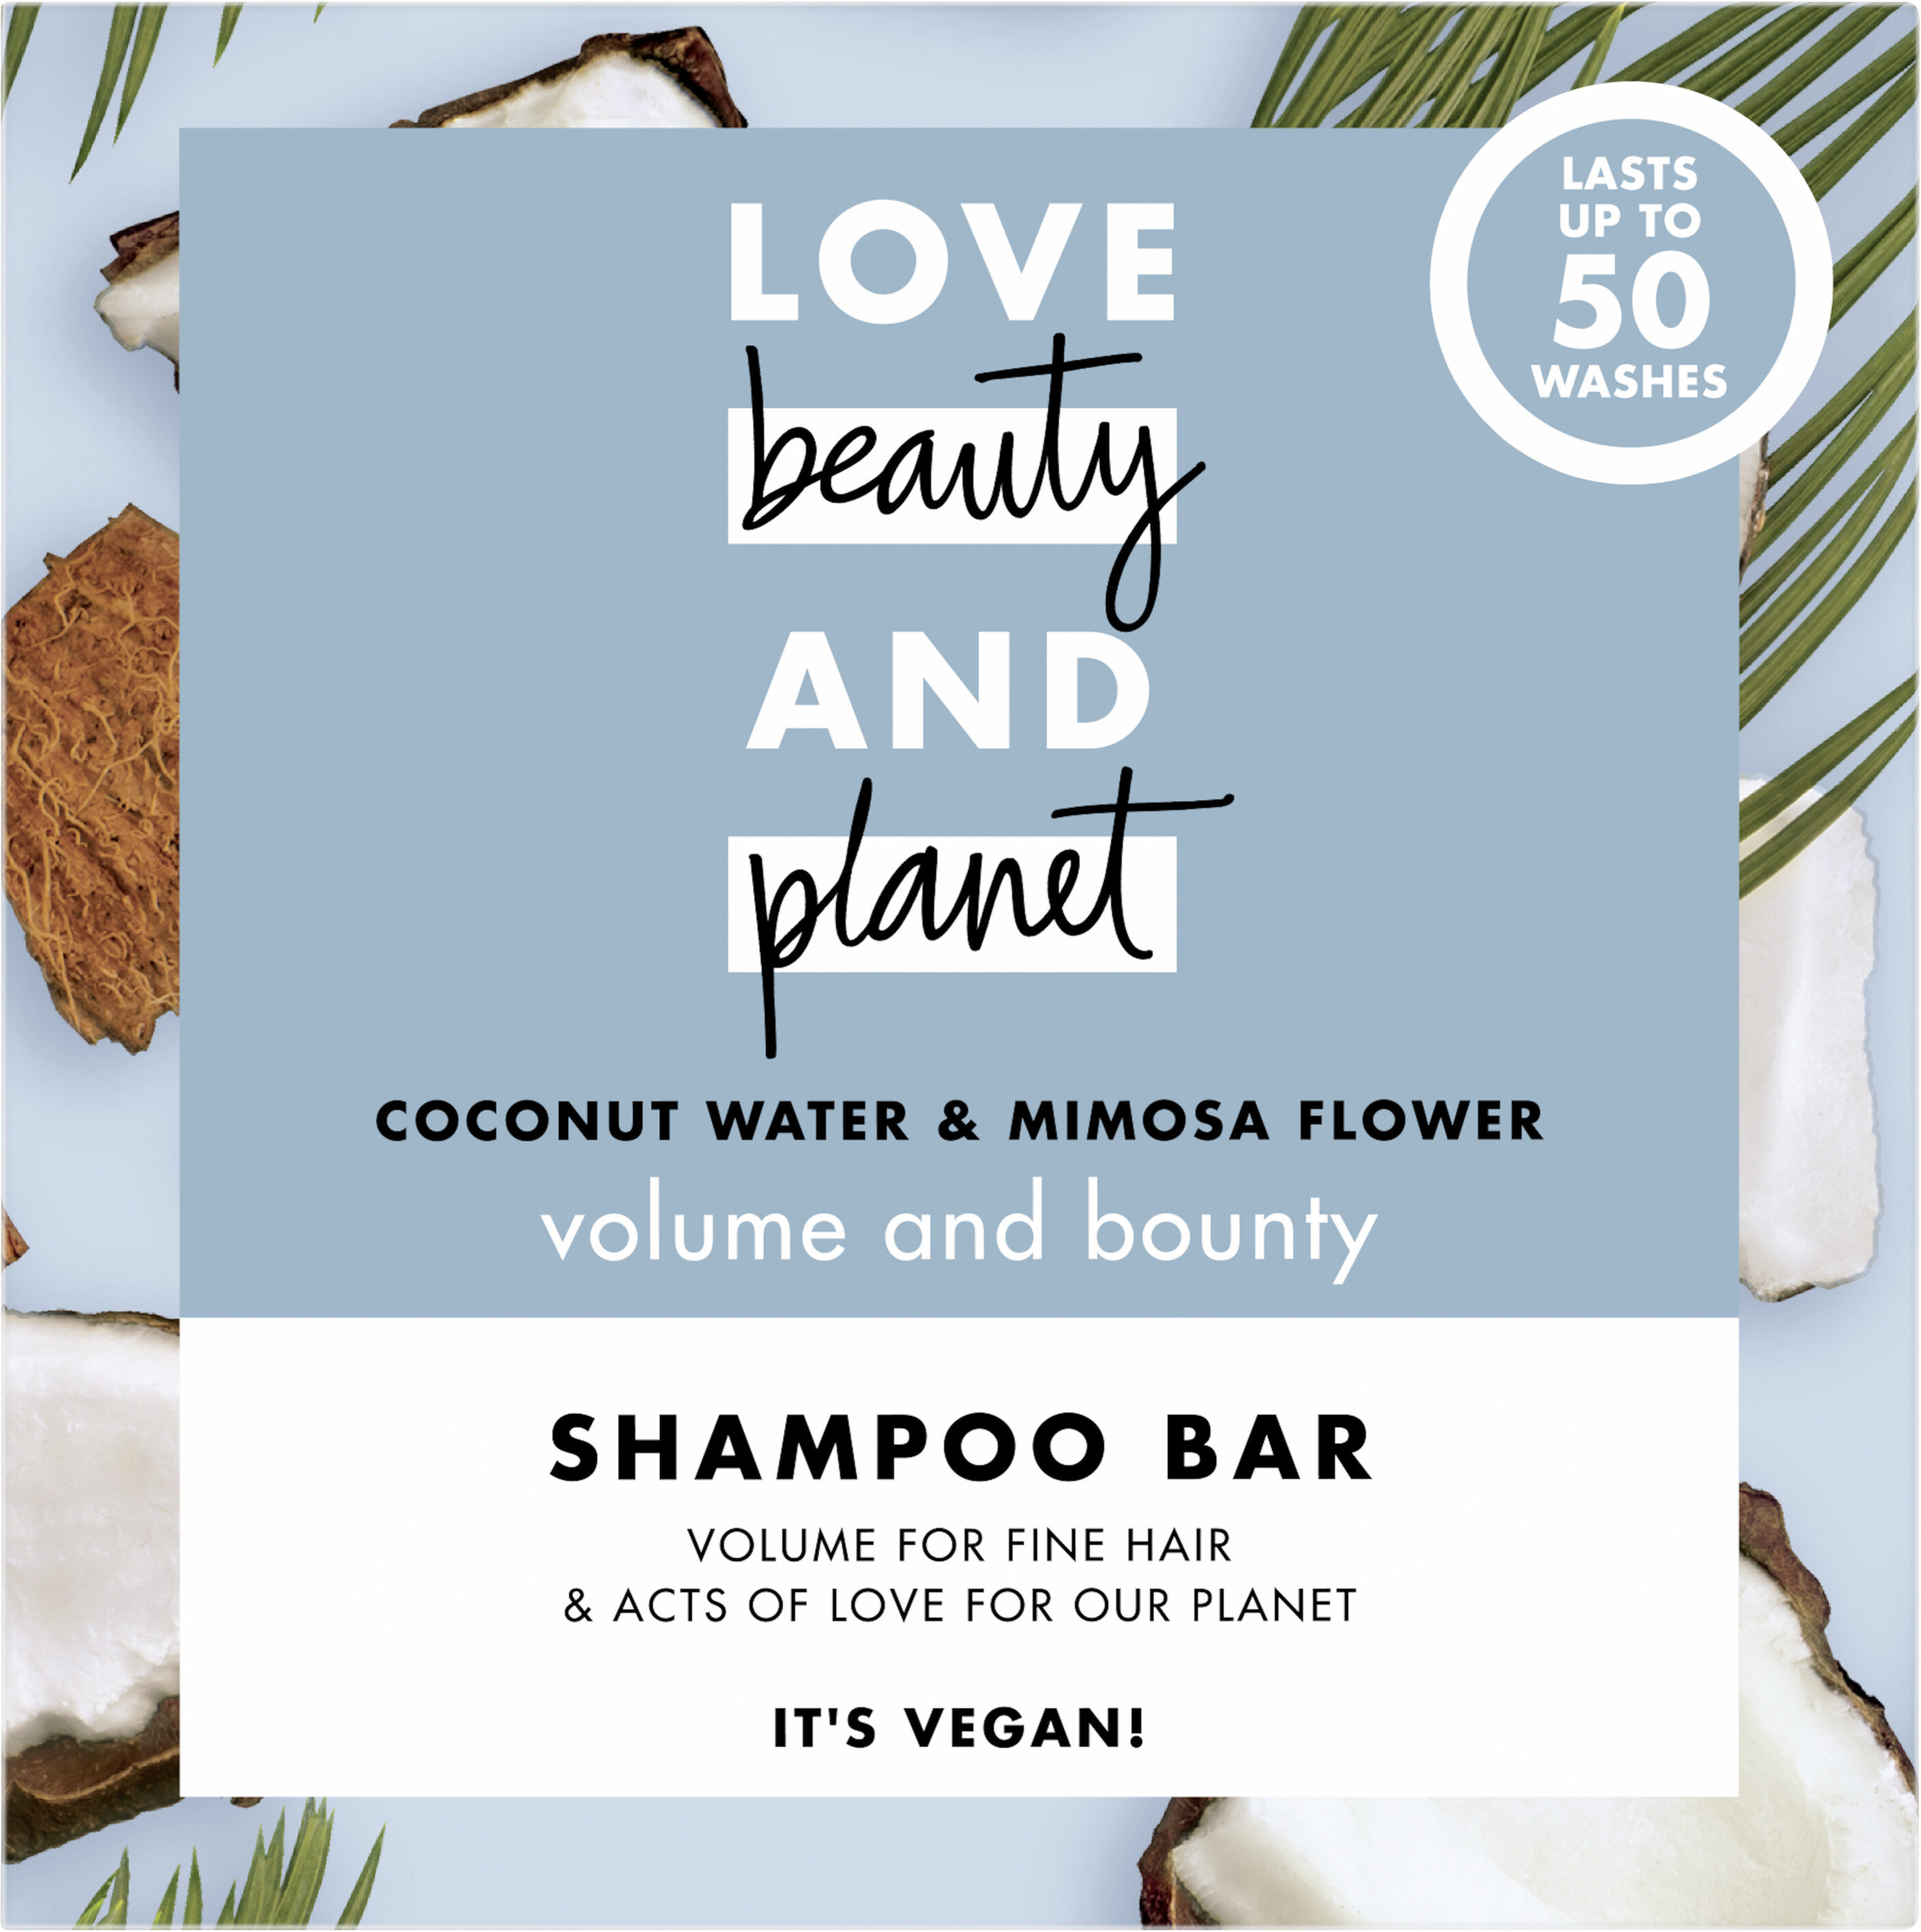 Love Beauty And Planet Shampooing Solide Vague Volumisante Eau de Coco & Fleur de Mimosa - Product - fr